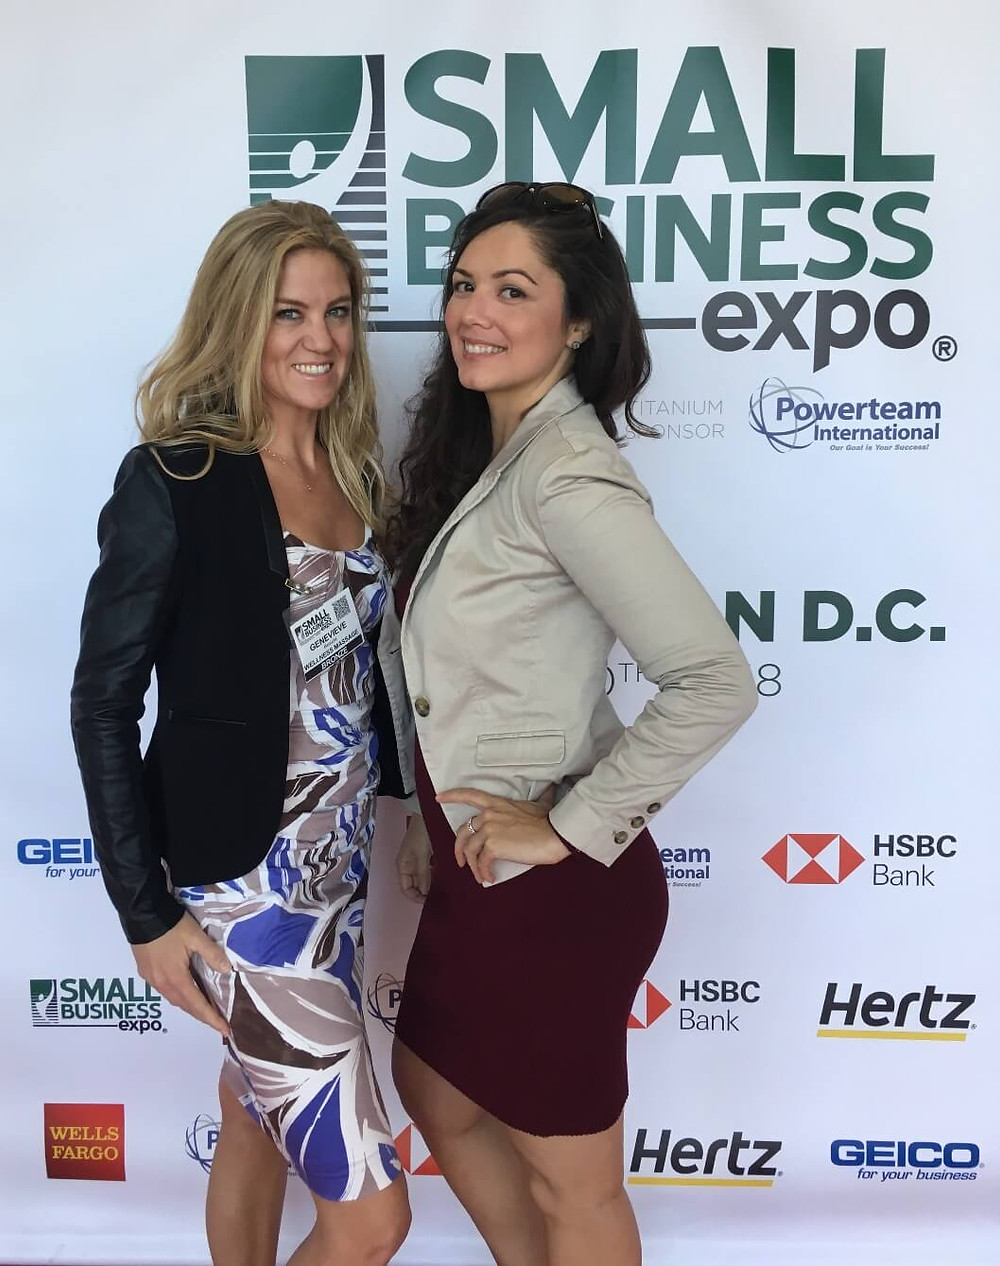 Dr. Valeri Colon at Small Business Expo